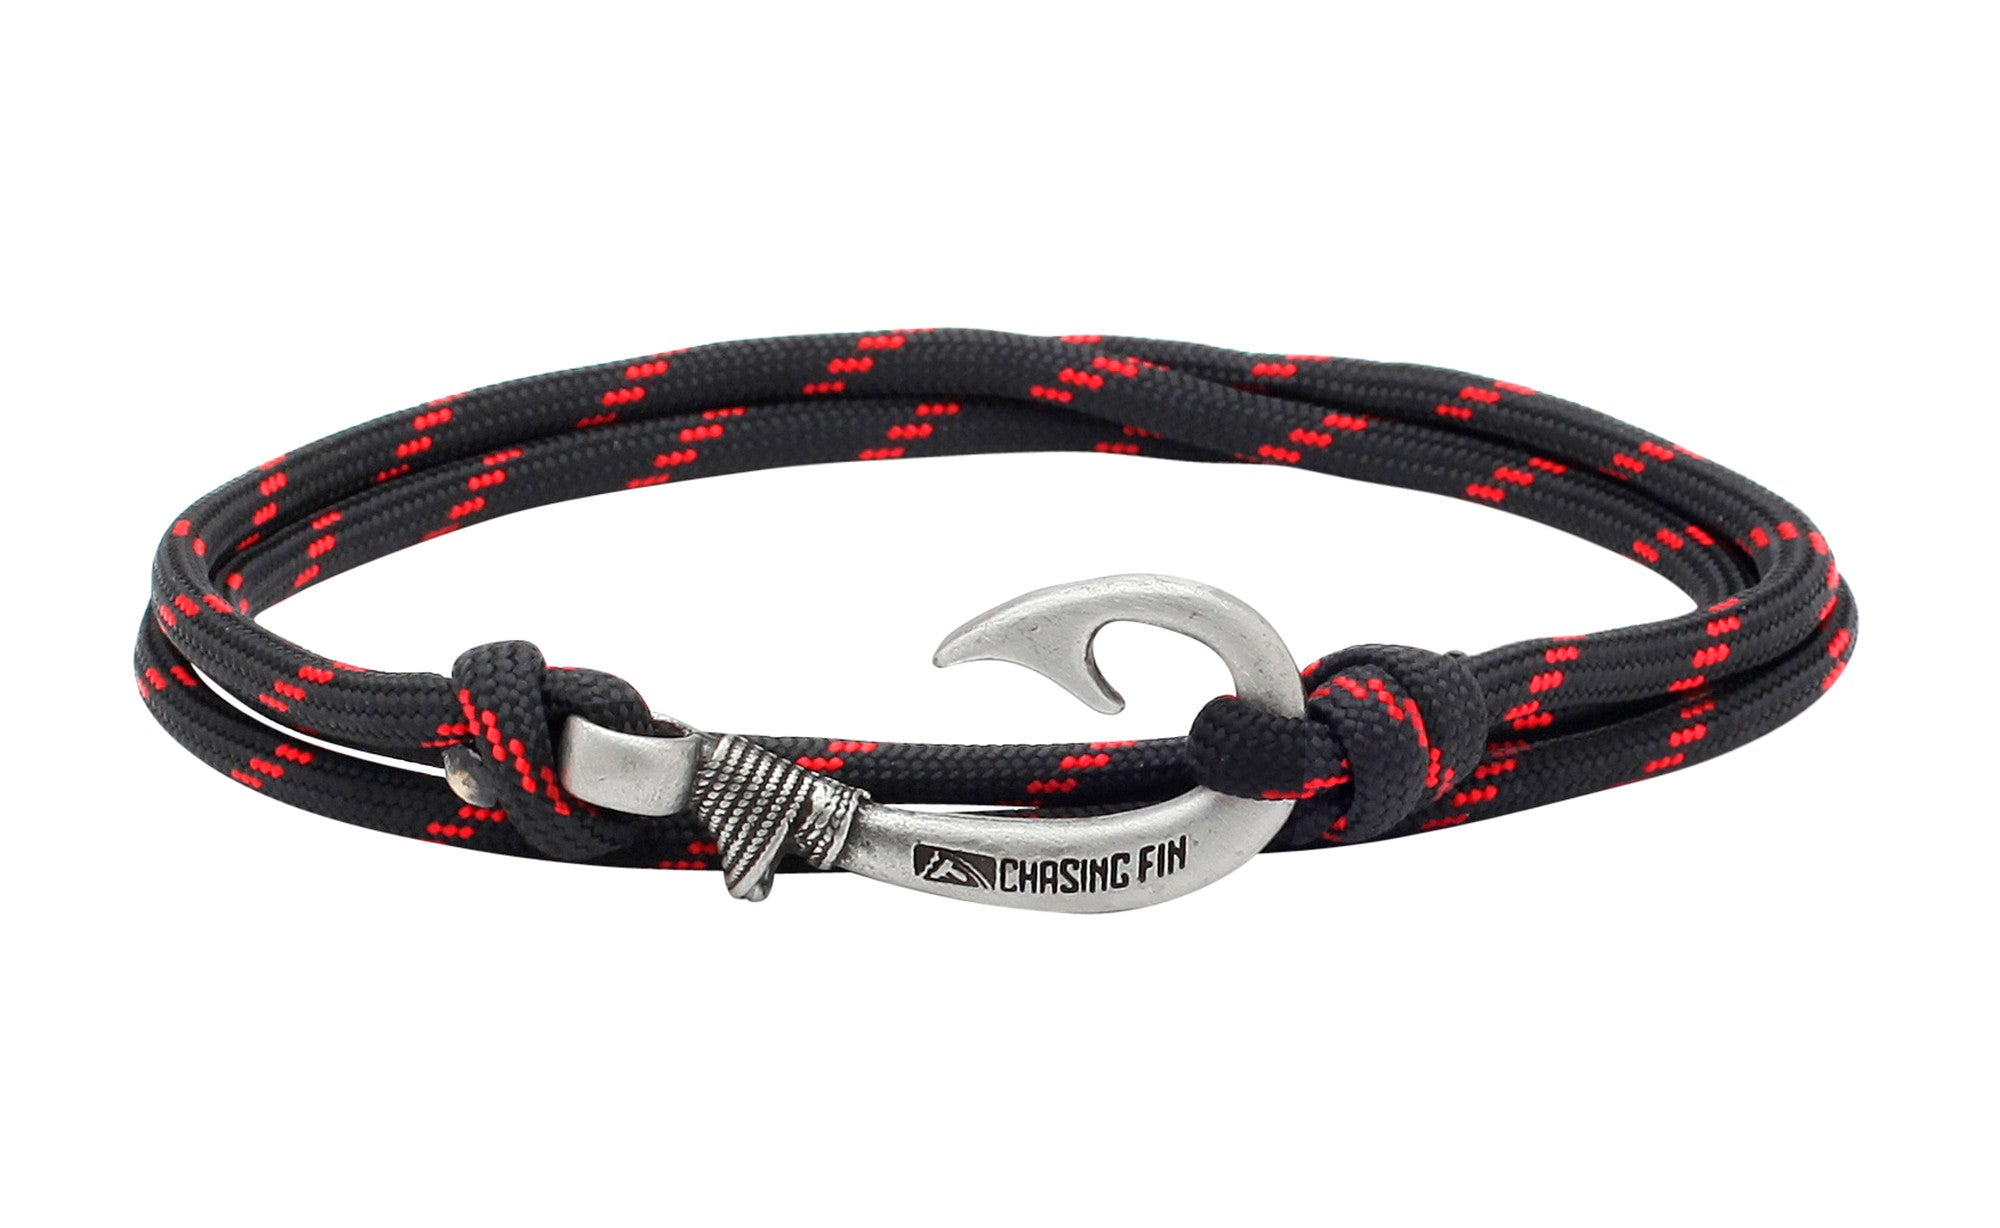 bracelet redline location collections monkey pave line secret red